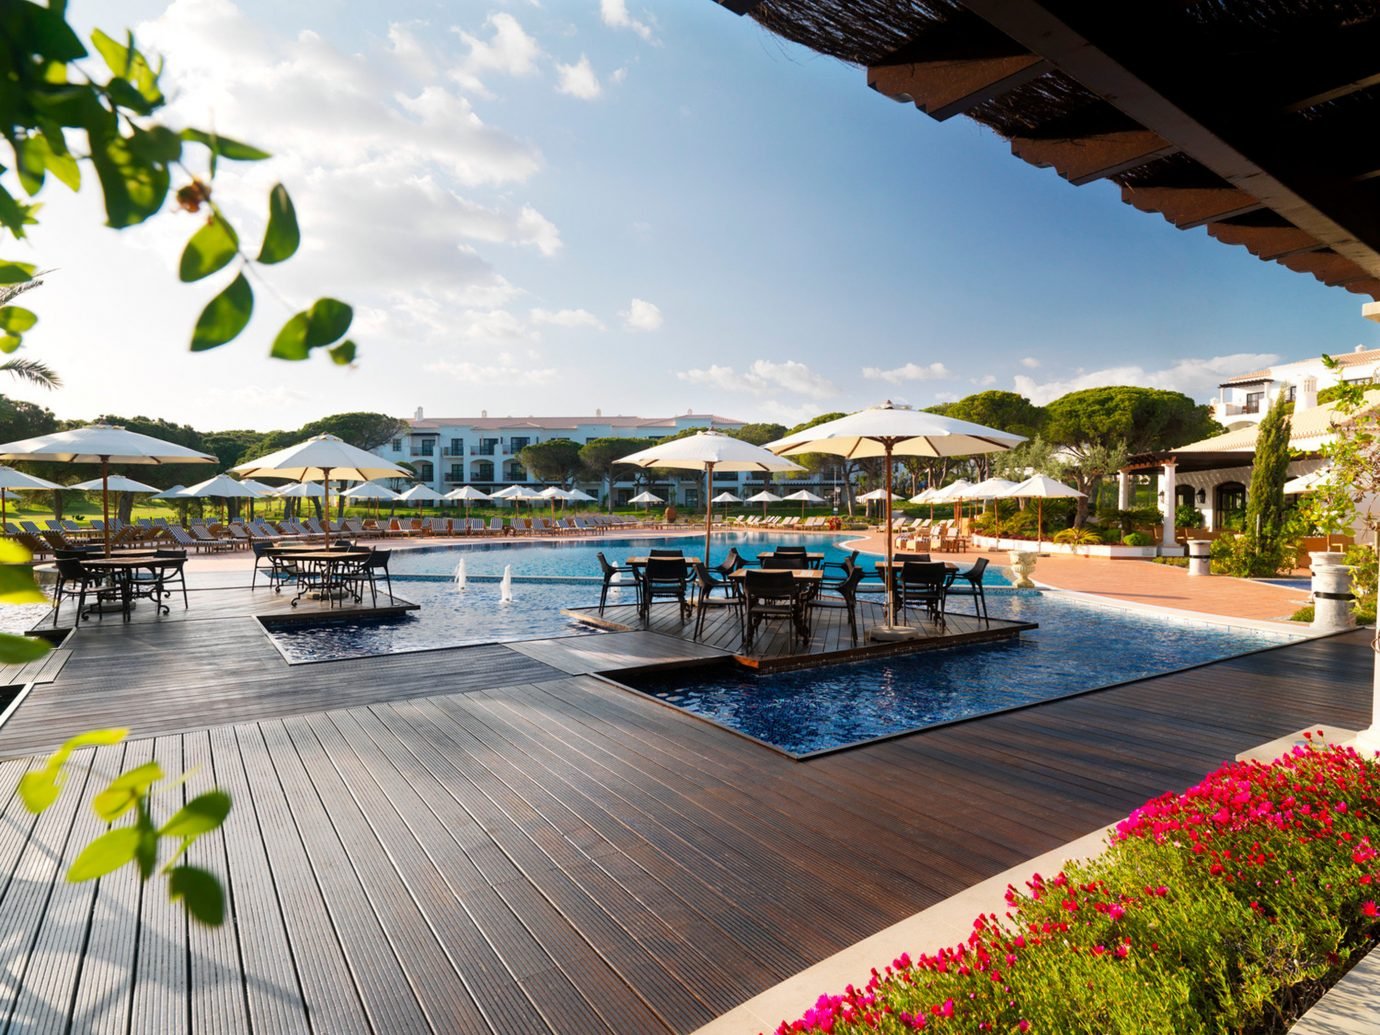 Family Hotels Patio Play Pool Resort sky outdoor leisure property swimming pool walkway plaza condominium vacation estate real estate